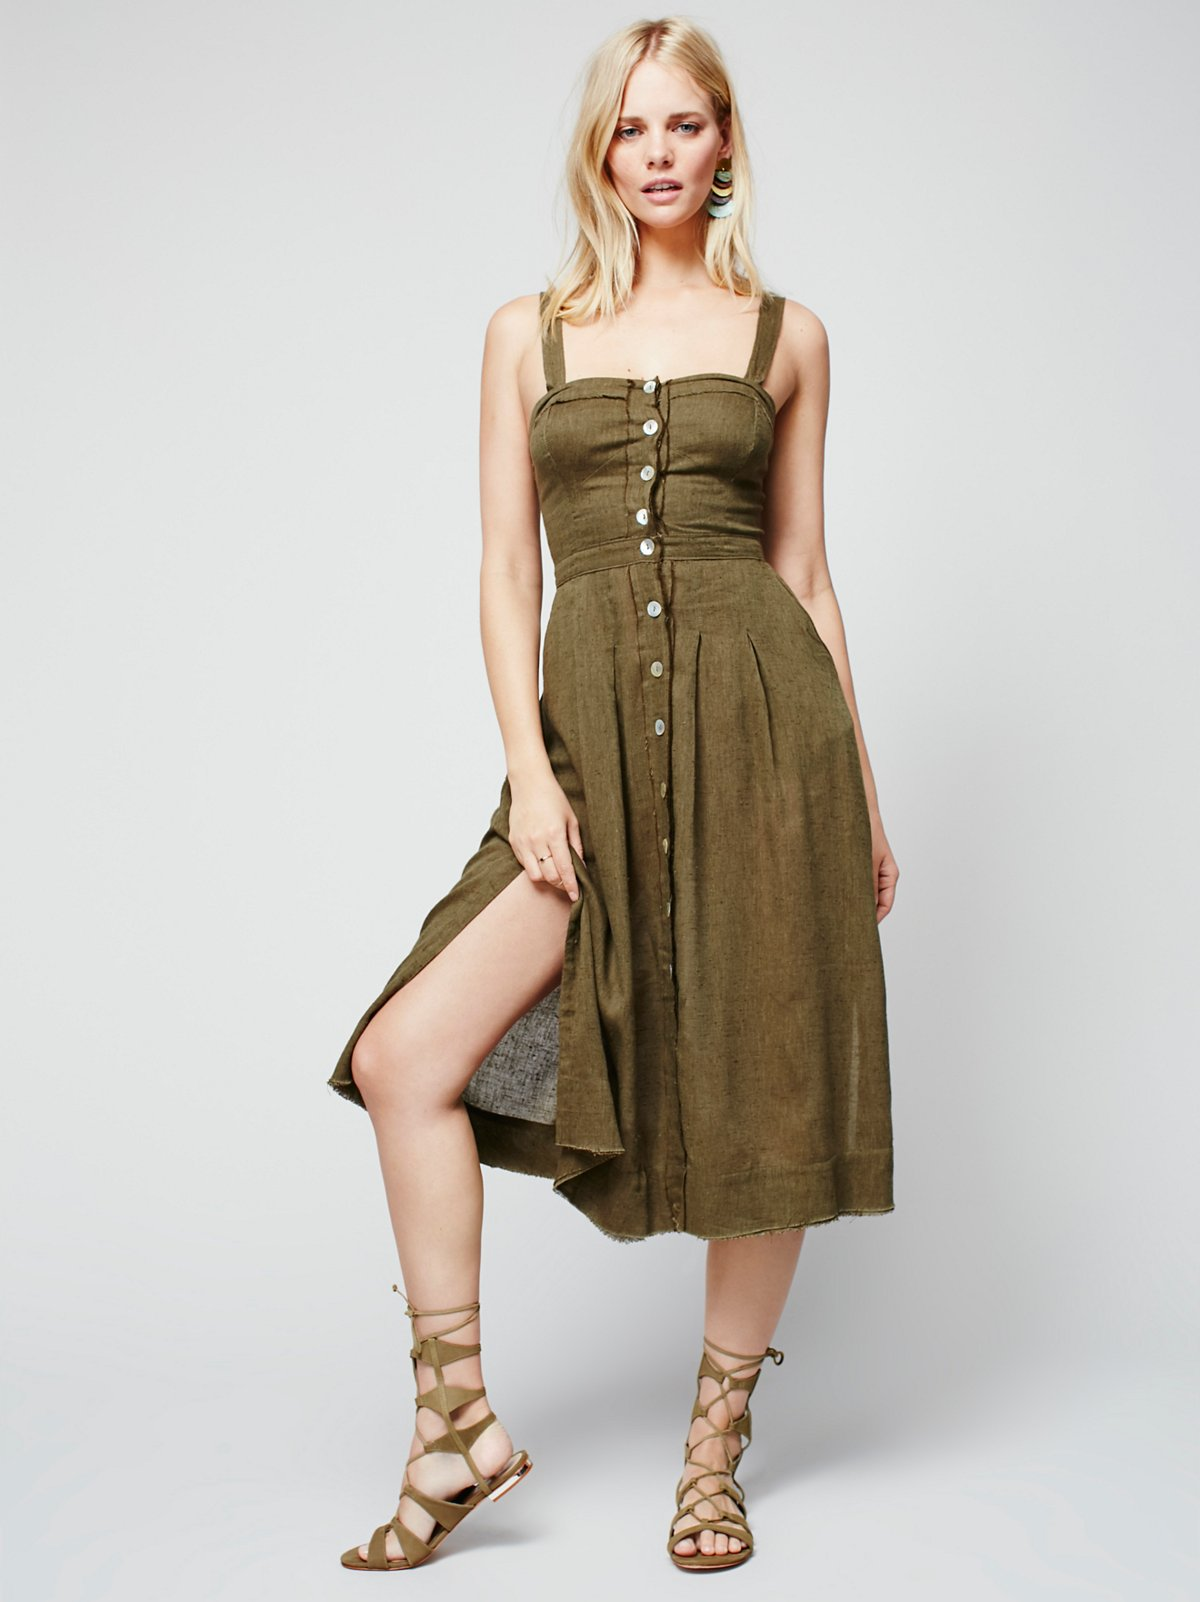 Endless Summer Girlfriend Material Dress At Free People